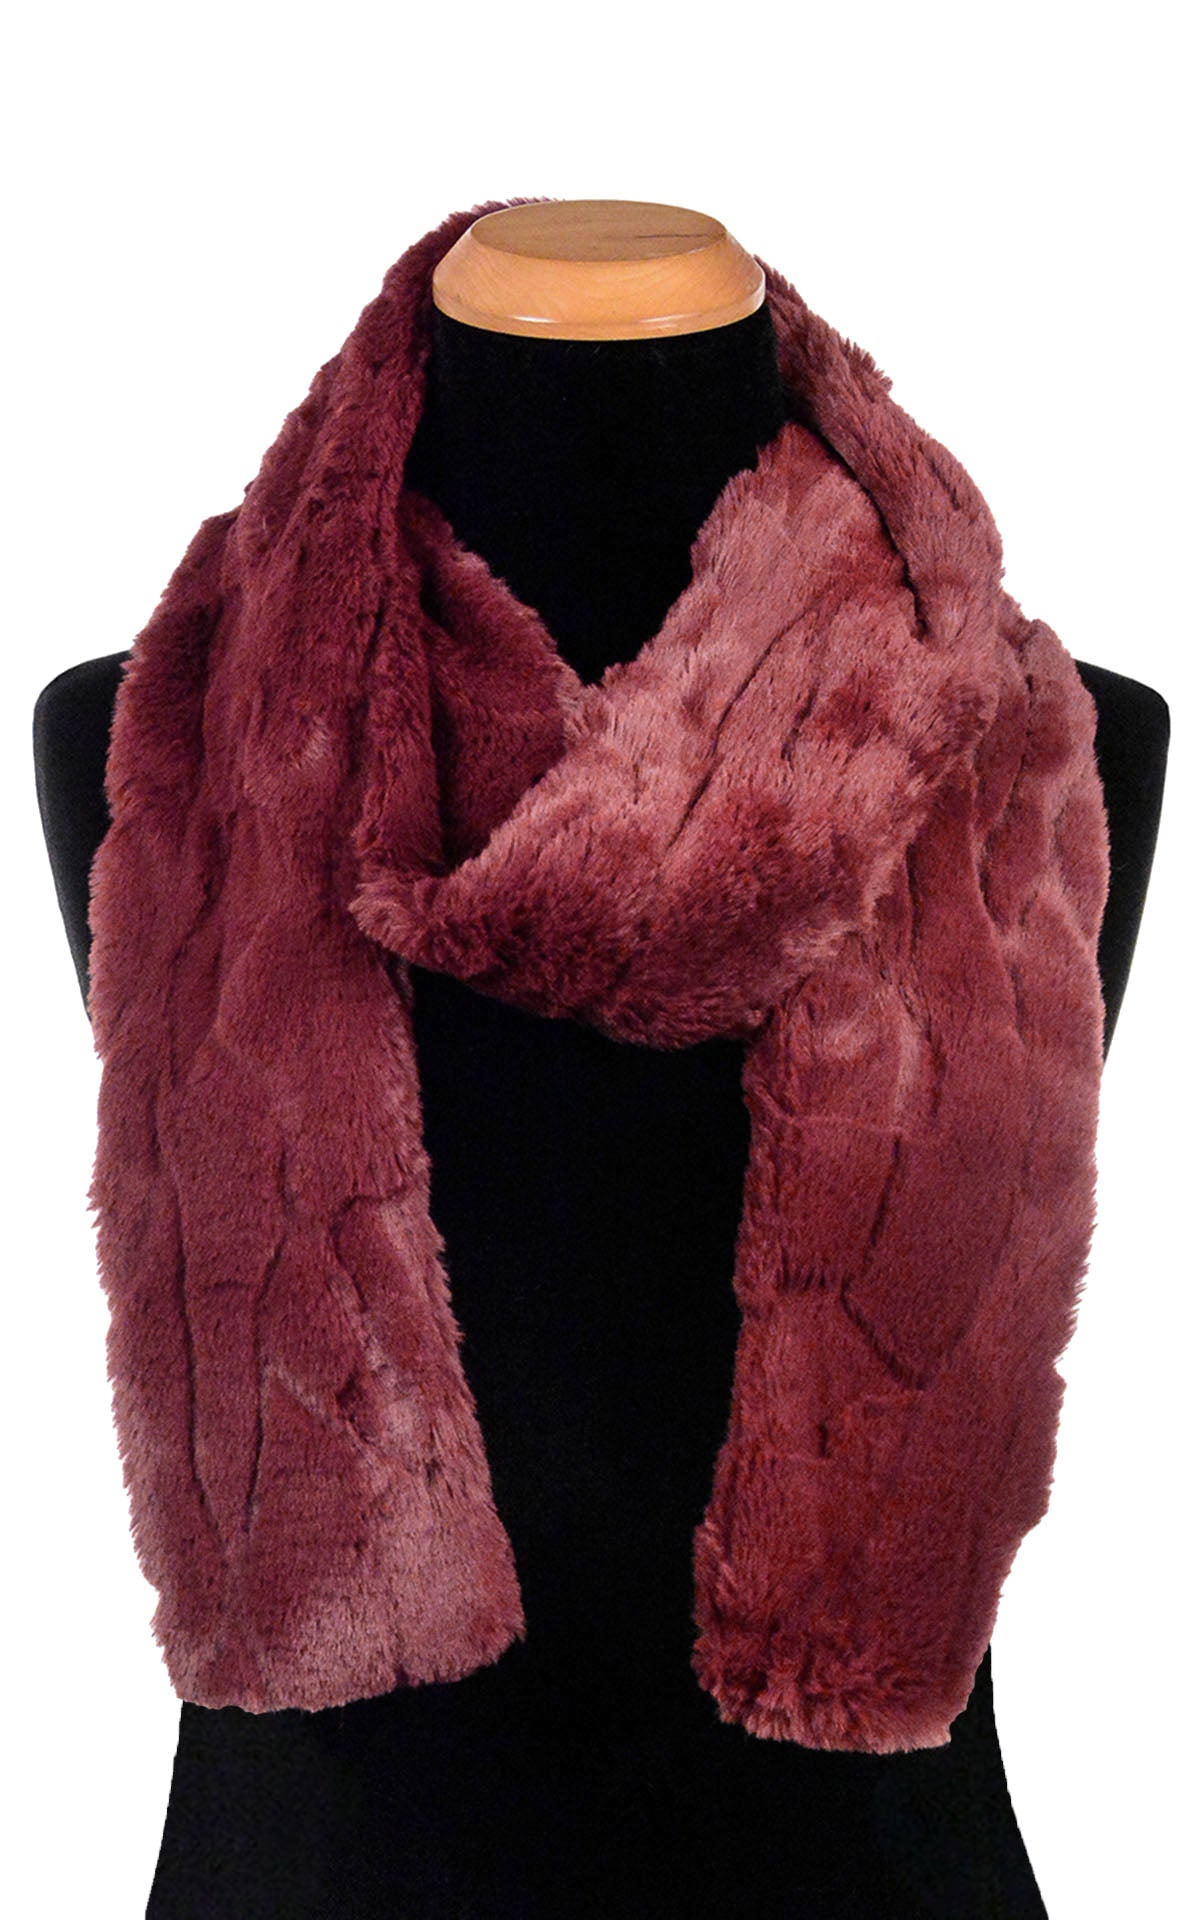 Men's Classic Scarf - Luxury Faux Fur in Cranberry Creek